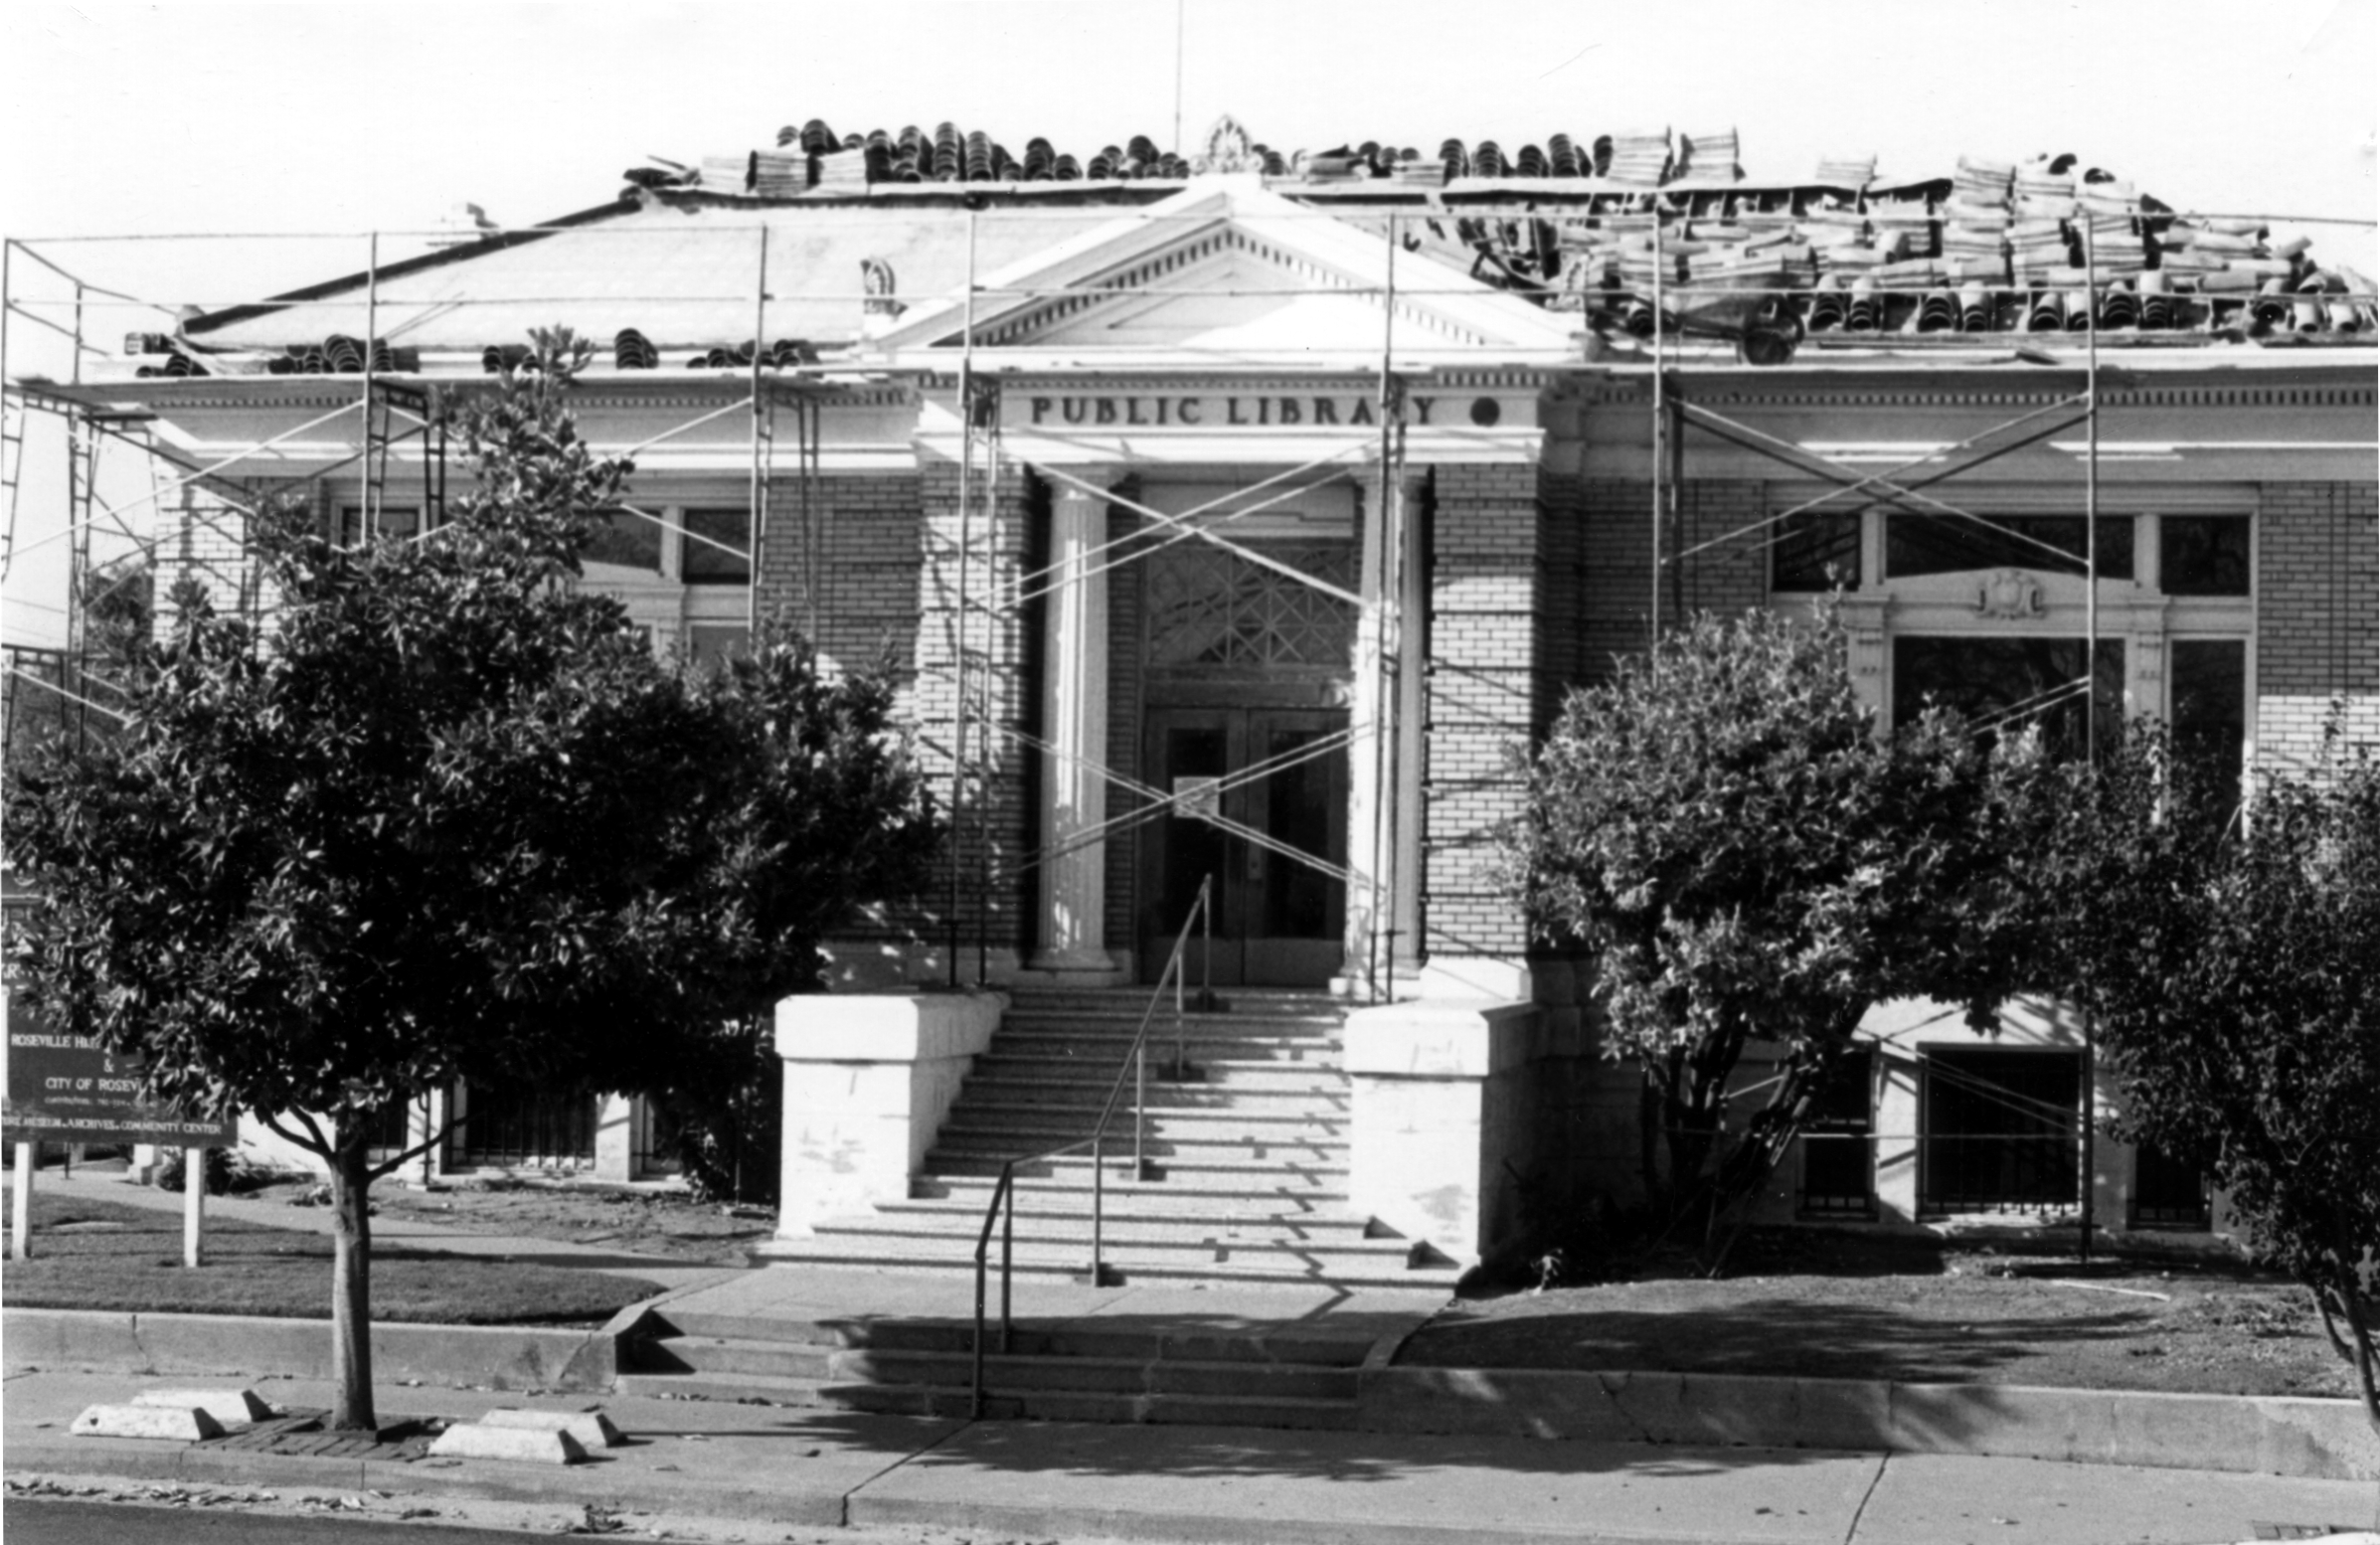 Renovating the old Public Library in the 1980's for its new use as home to the Roseville Historical Society.